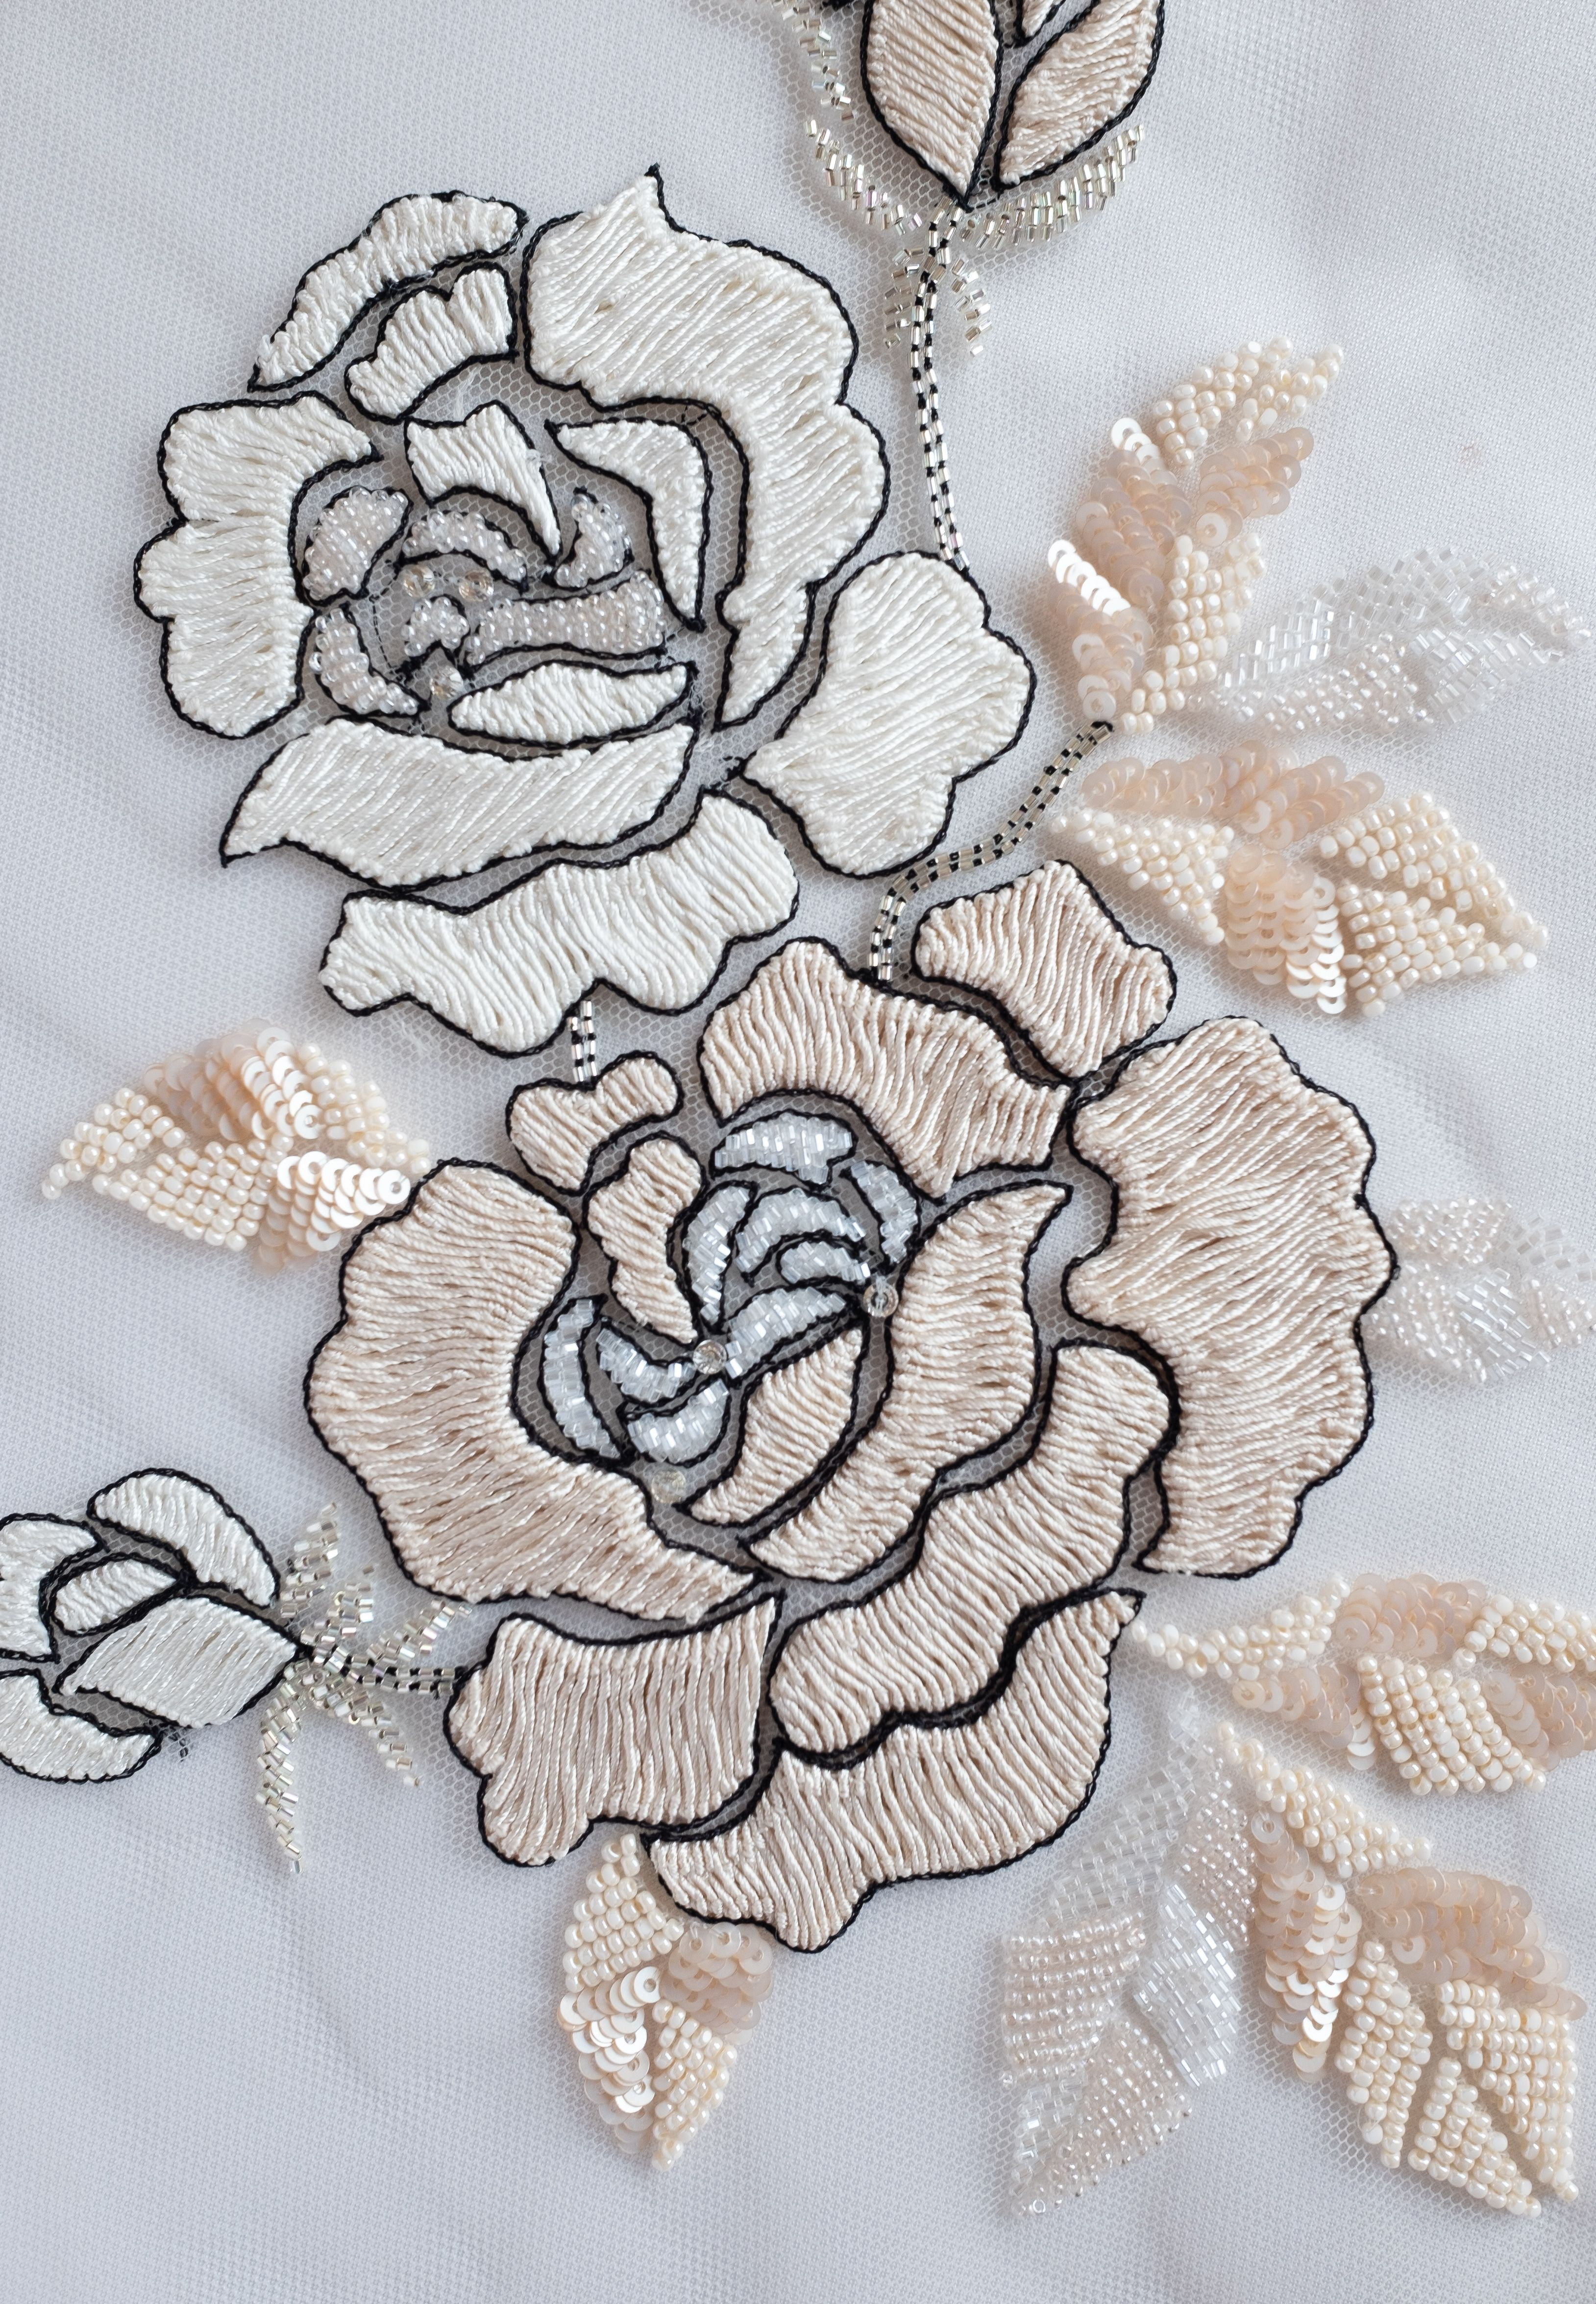 *IRON ON* 2 Styles Embroidered Applique//Motif Floral Flower Indian dress cushion